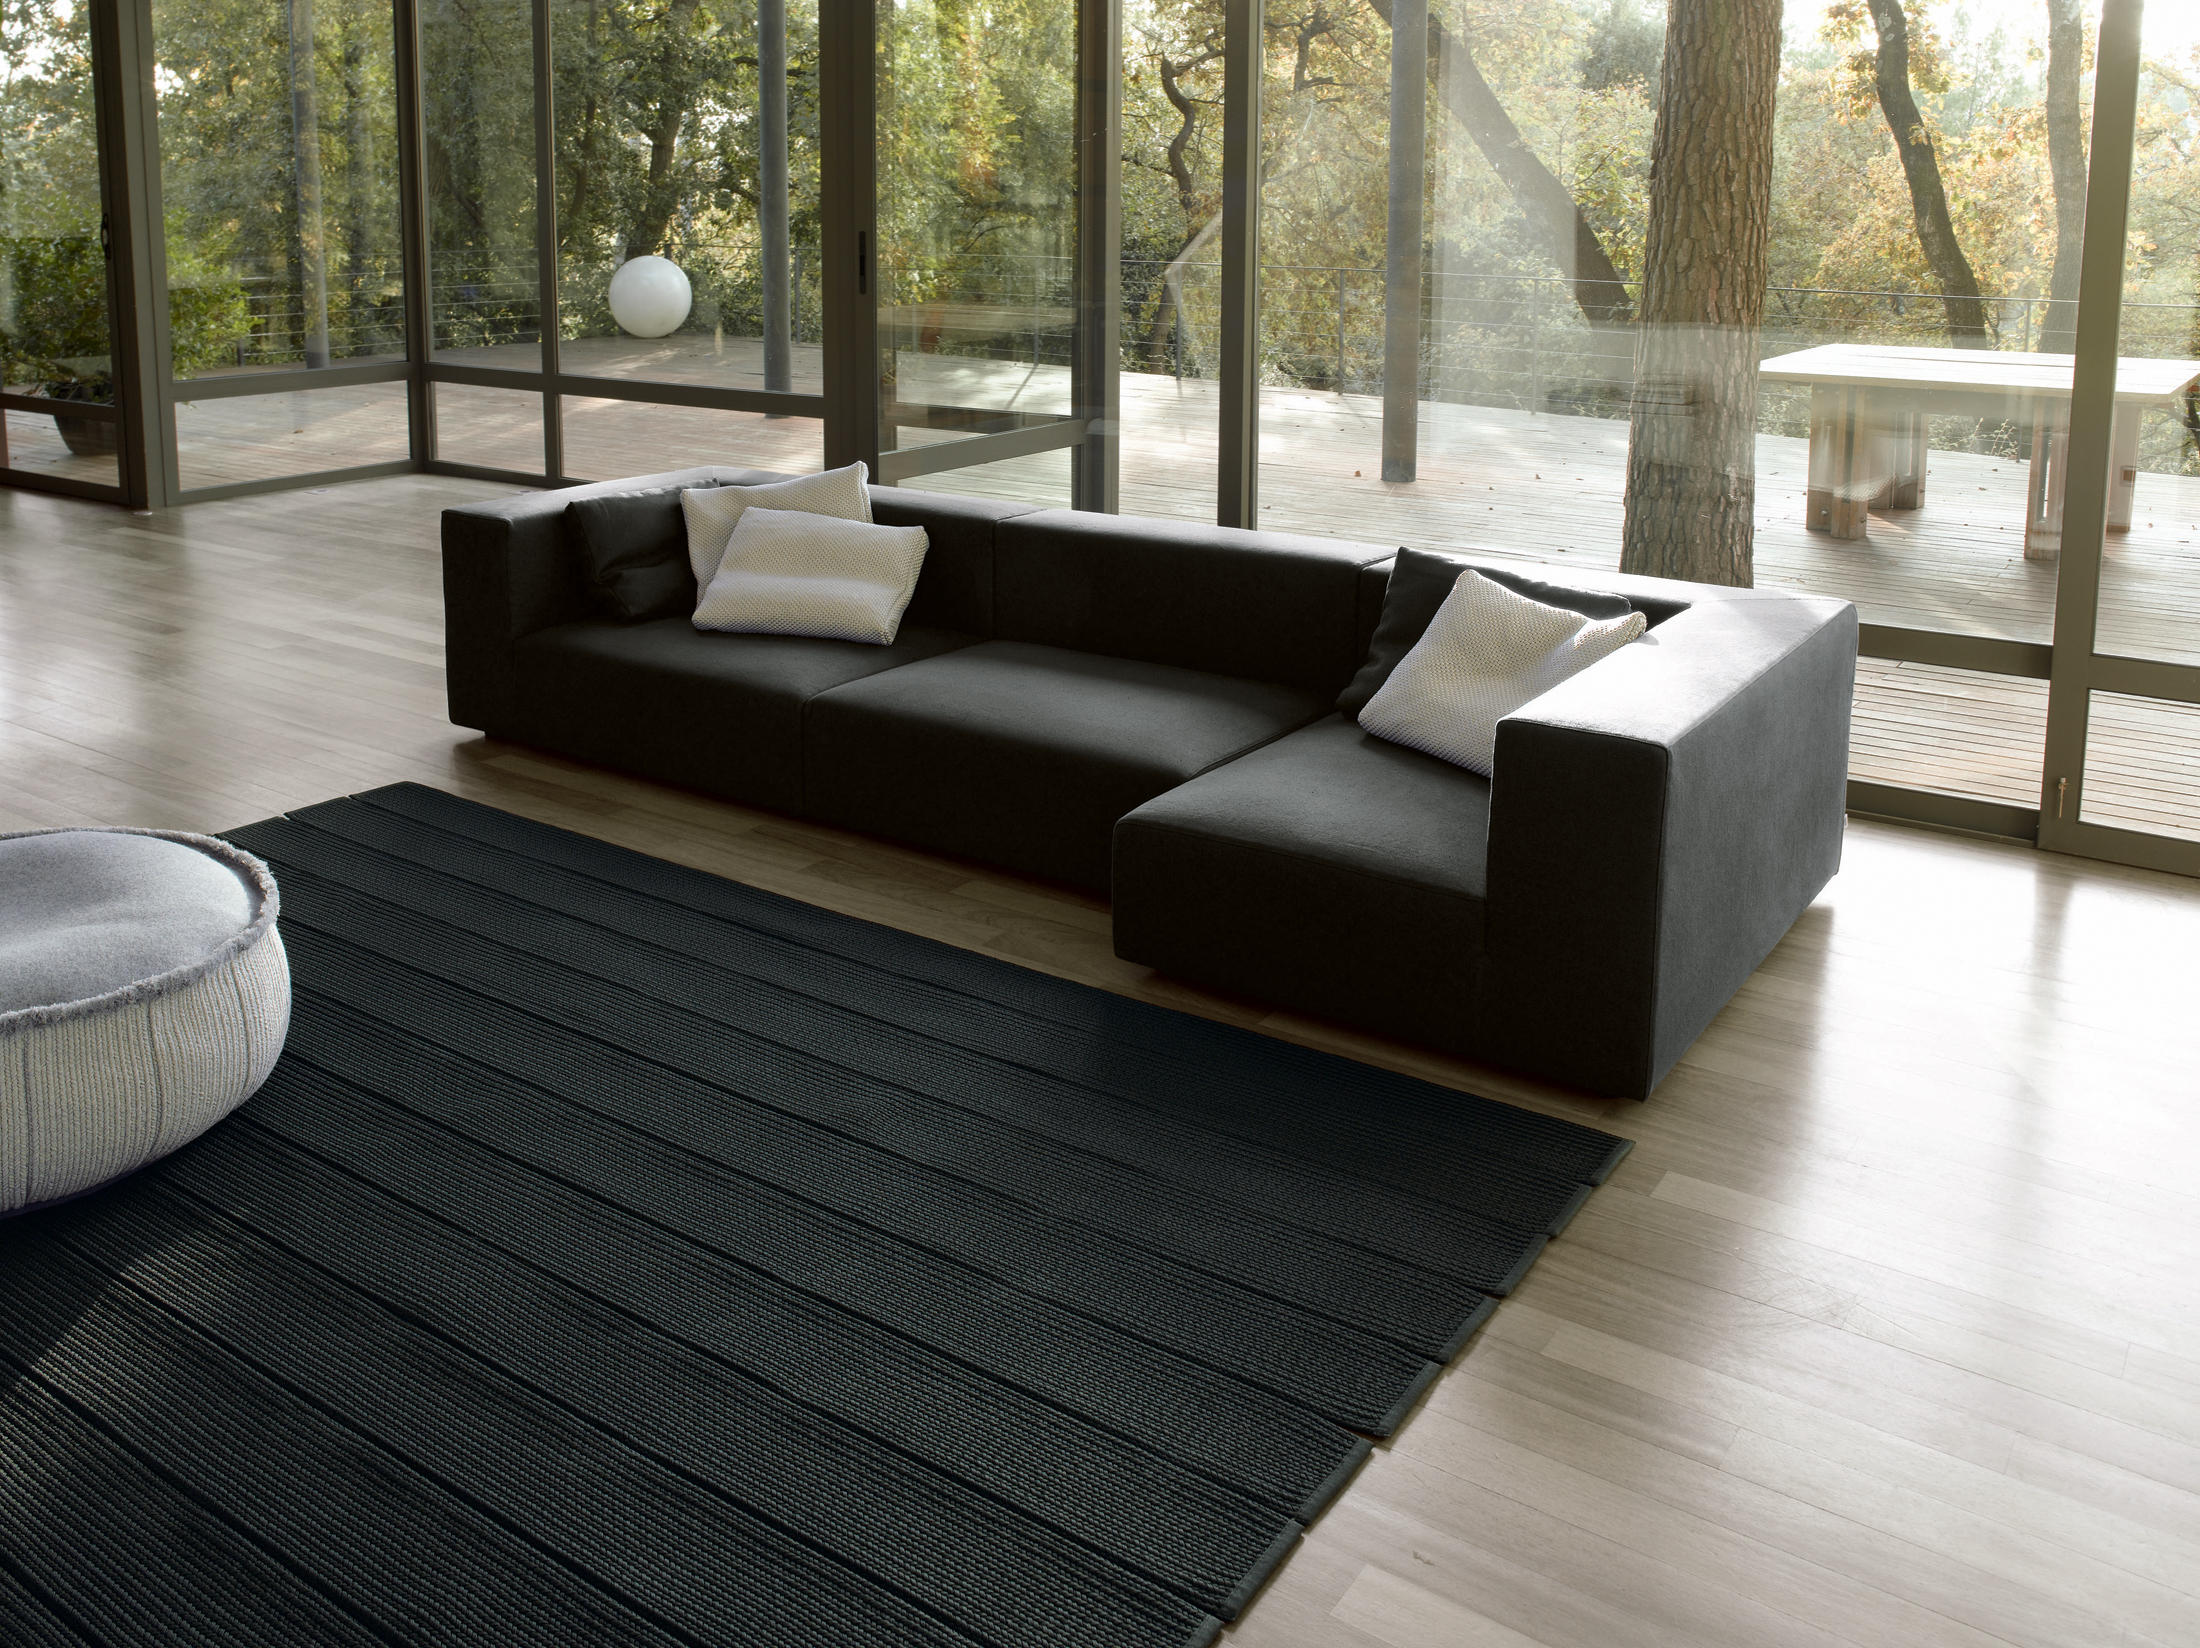 atollo next m lounge sofas from paola lenti architonic. Black Bedroom Furniture Sets. Home Design Ideas